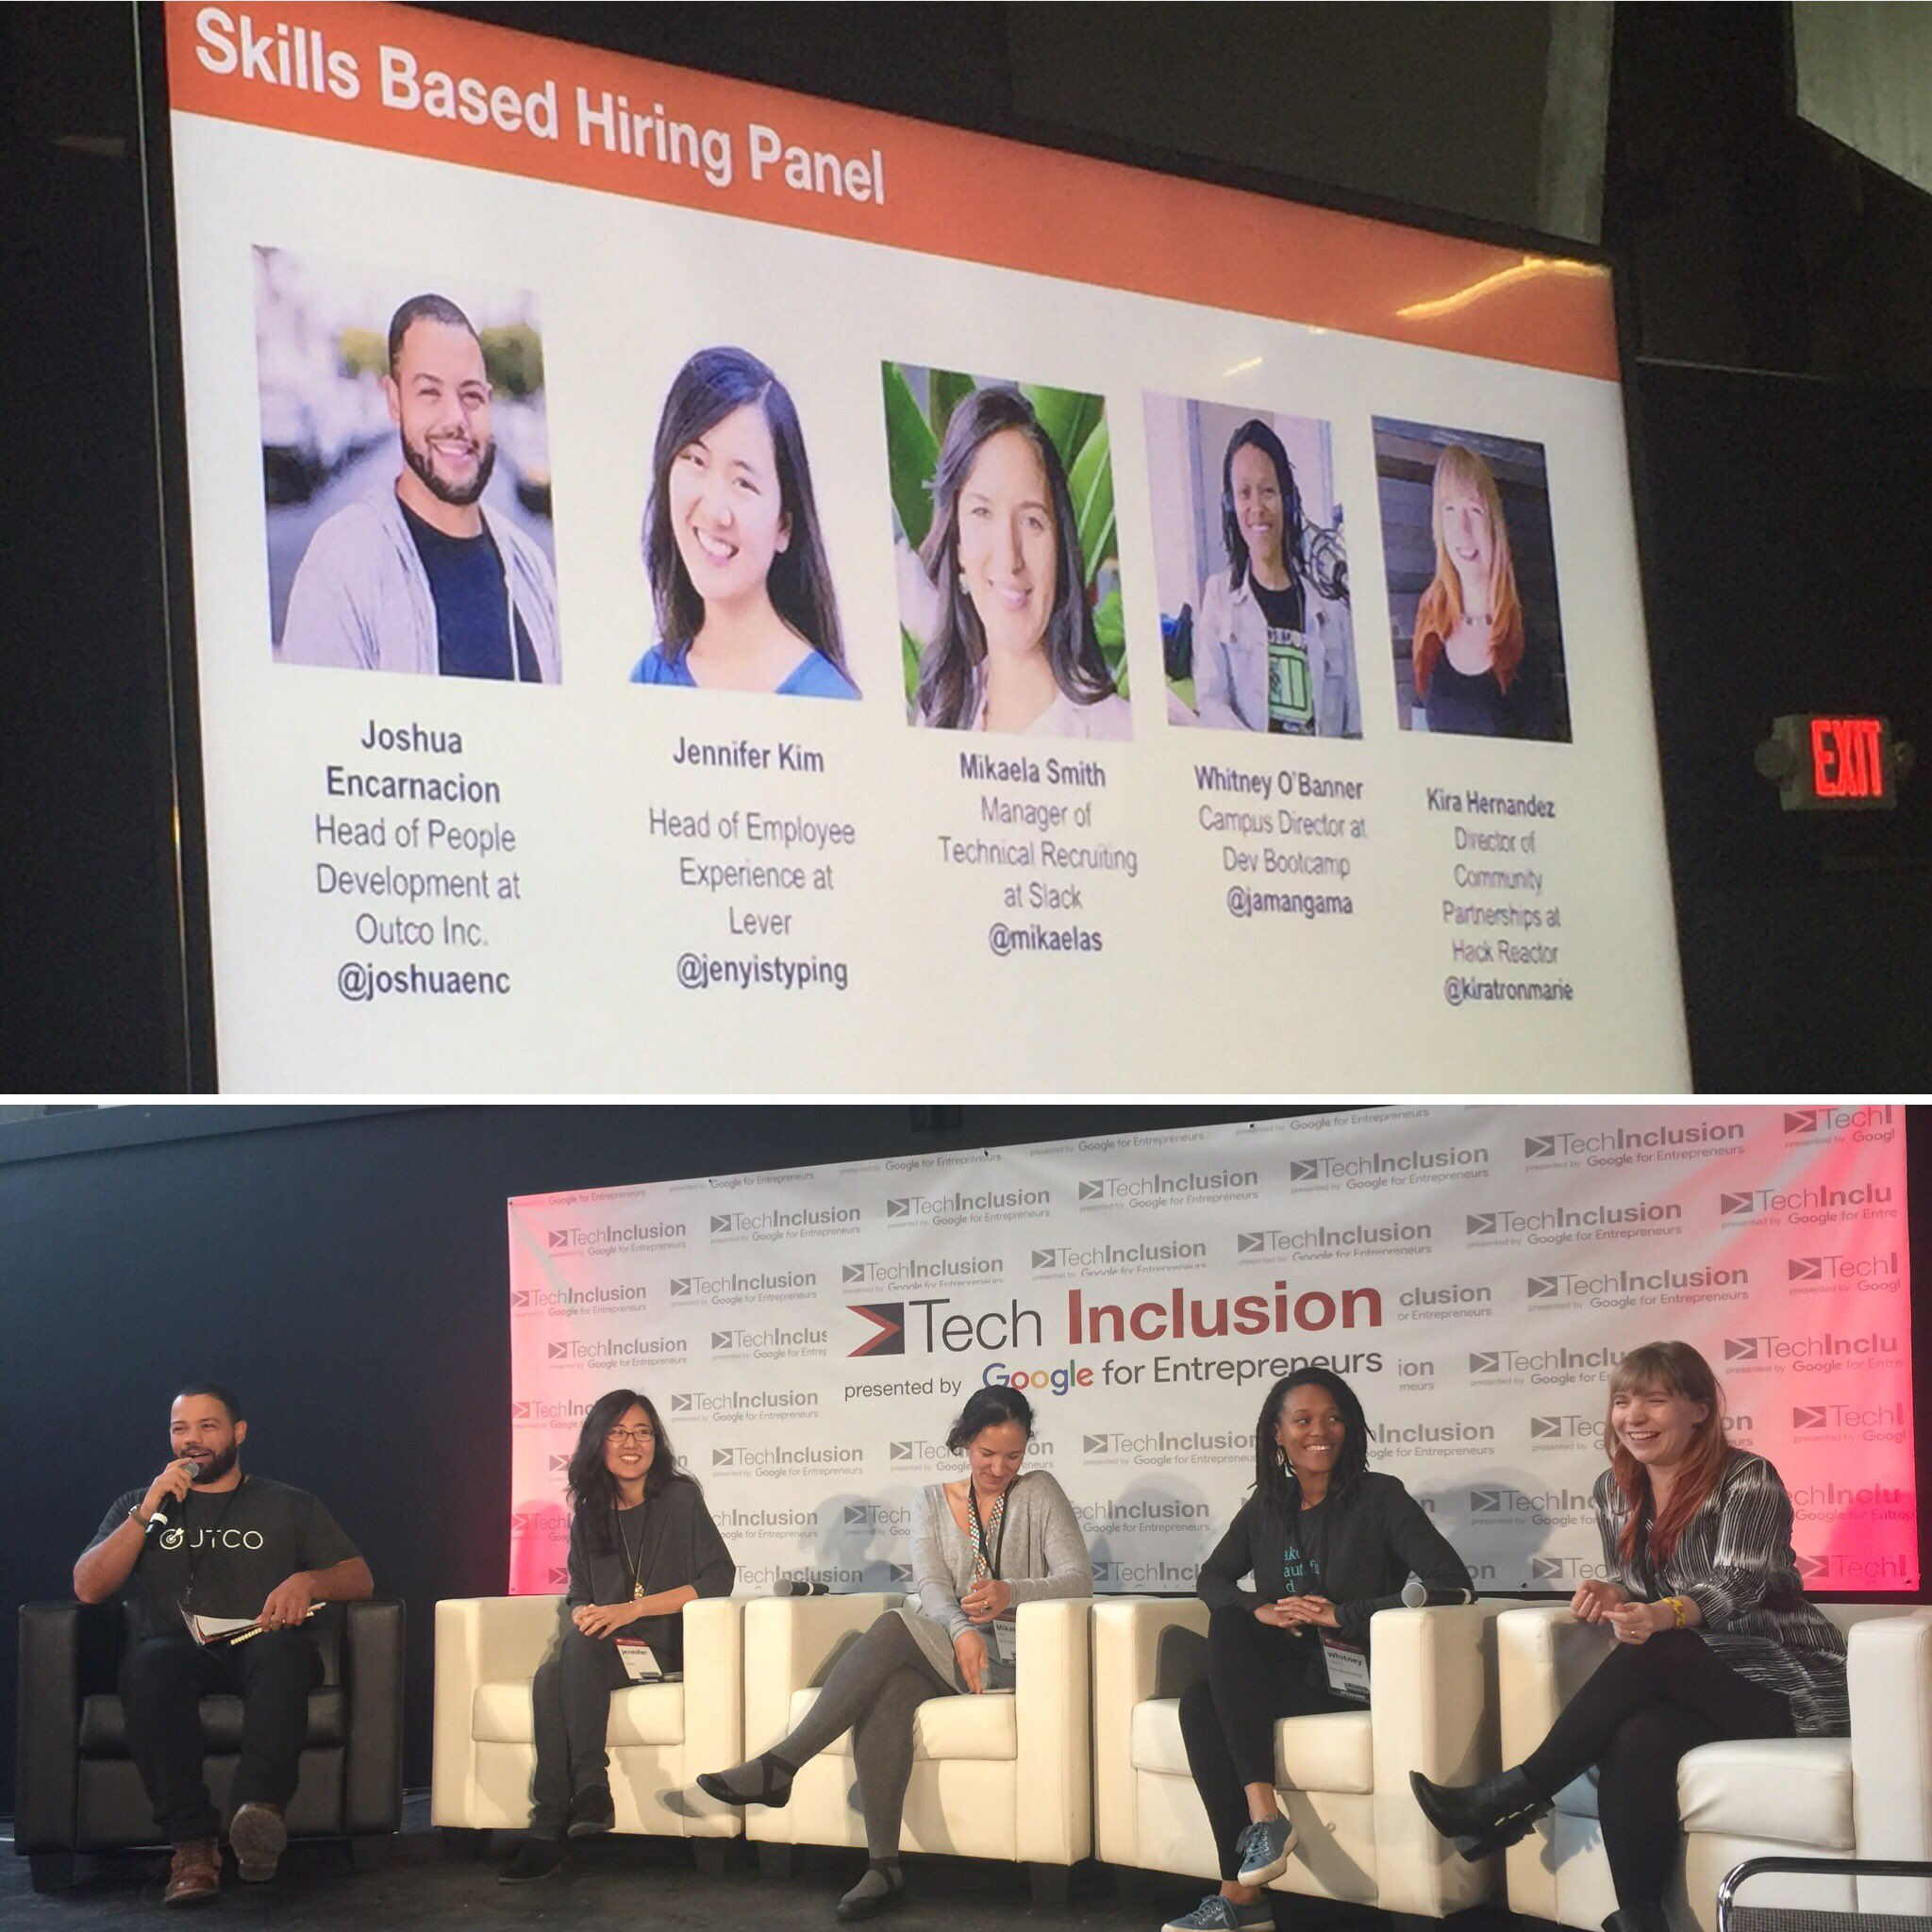 Skills Based Hiring Panel - feat. @joshuaenc @jenyistyping @mikaelas @jamangama  @kiratronmarie #TechInclusion16 #TheSocialEngineer https://t.co/As9nsf1oGY